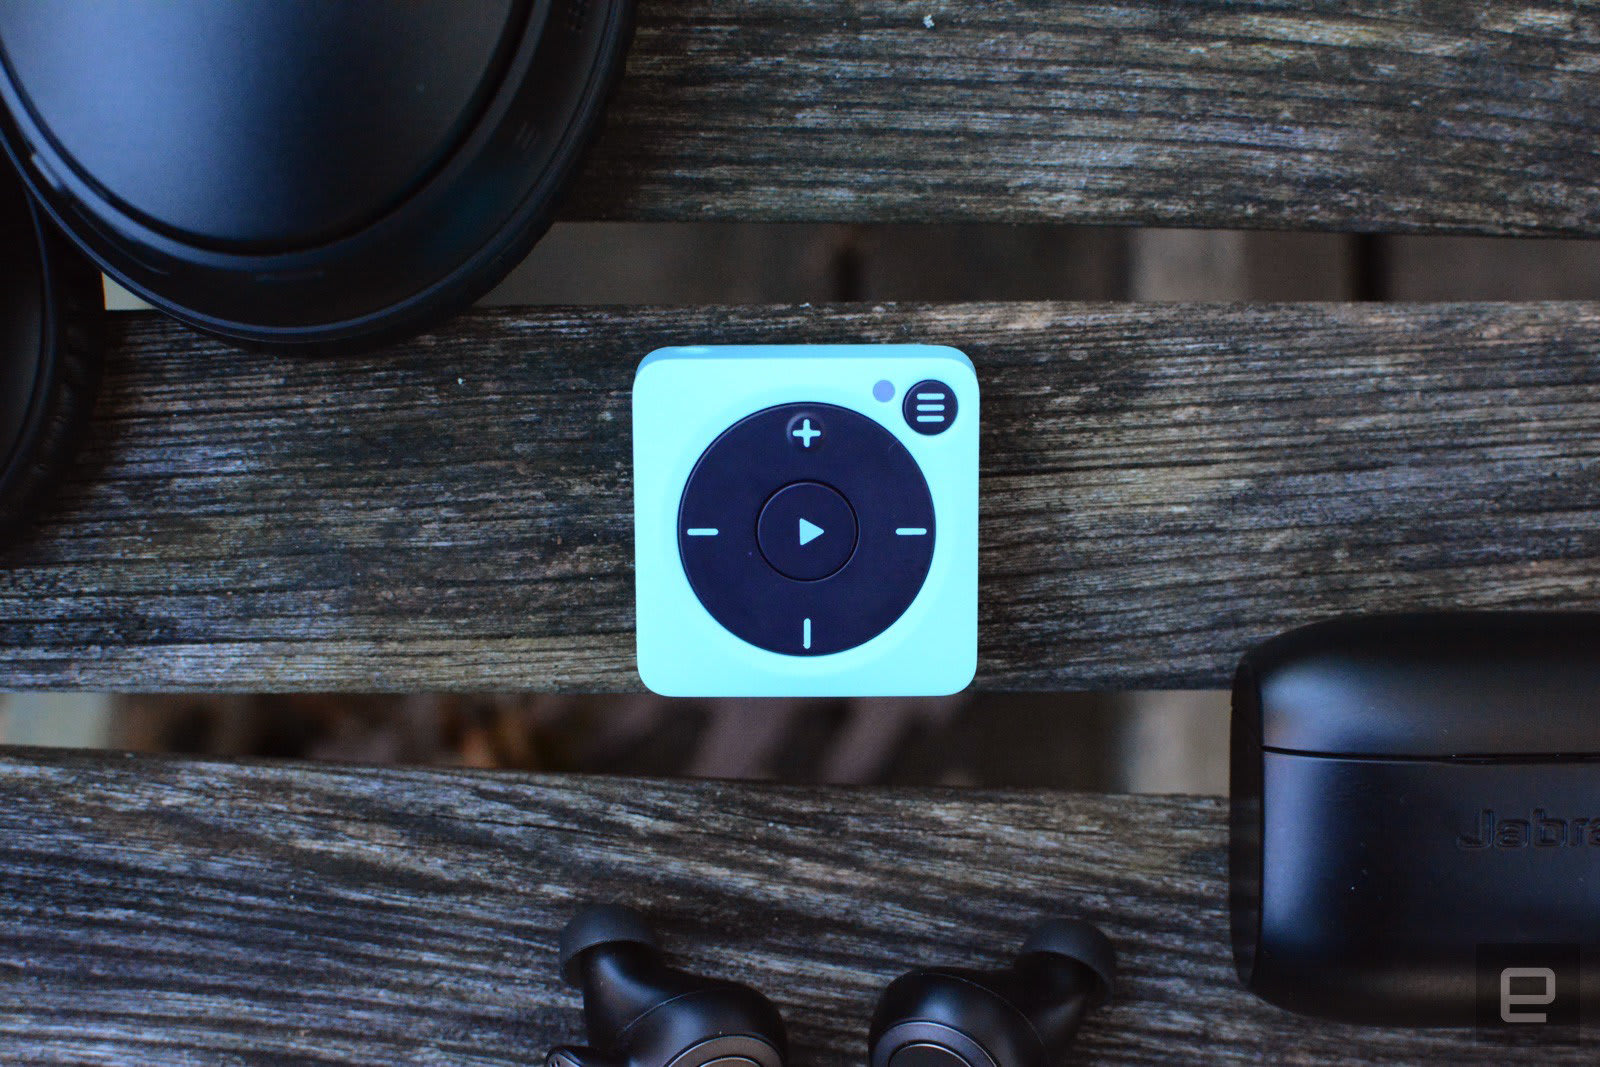 Mighty's iPod Shuffle for Spotify now works with Amazon Music